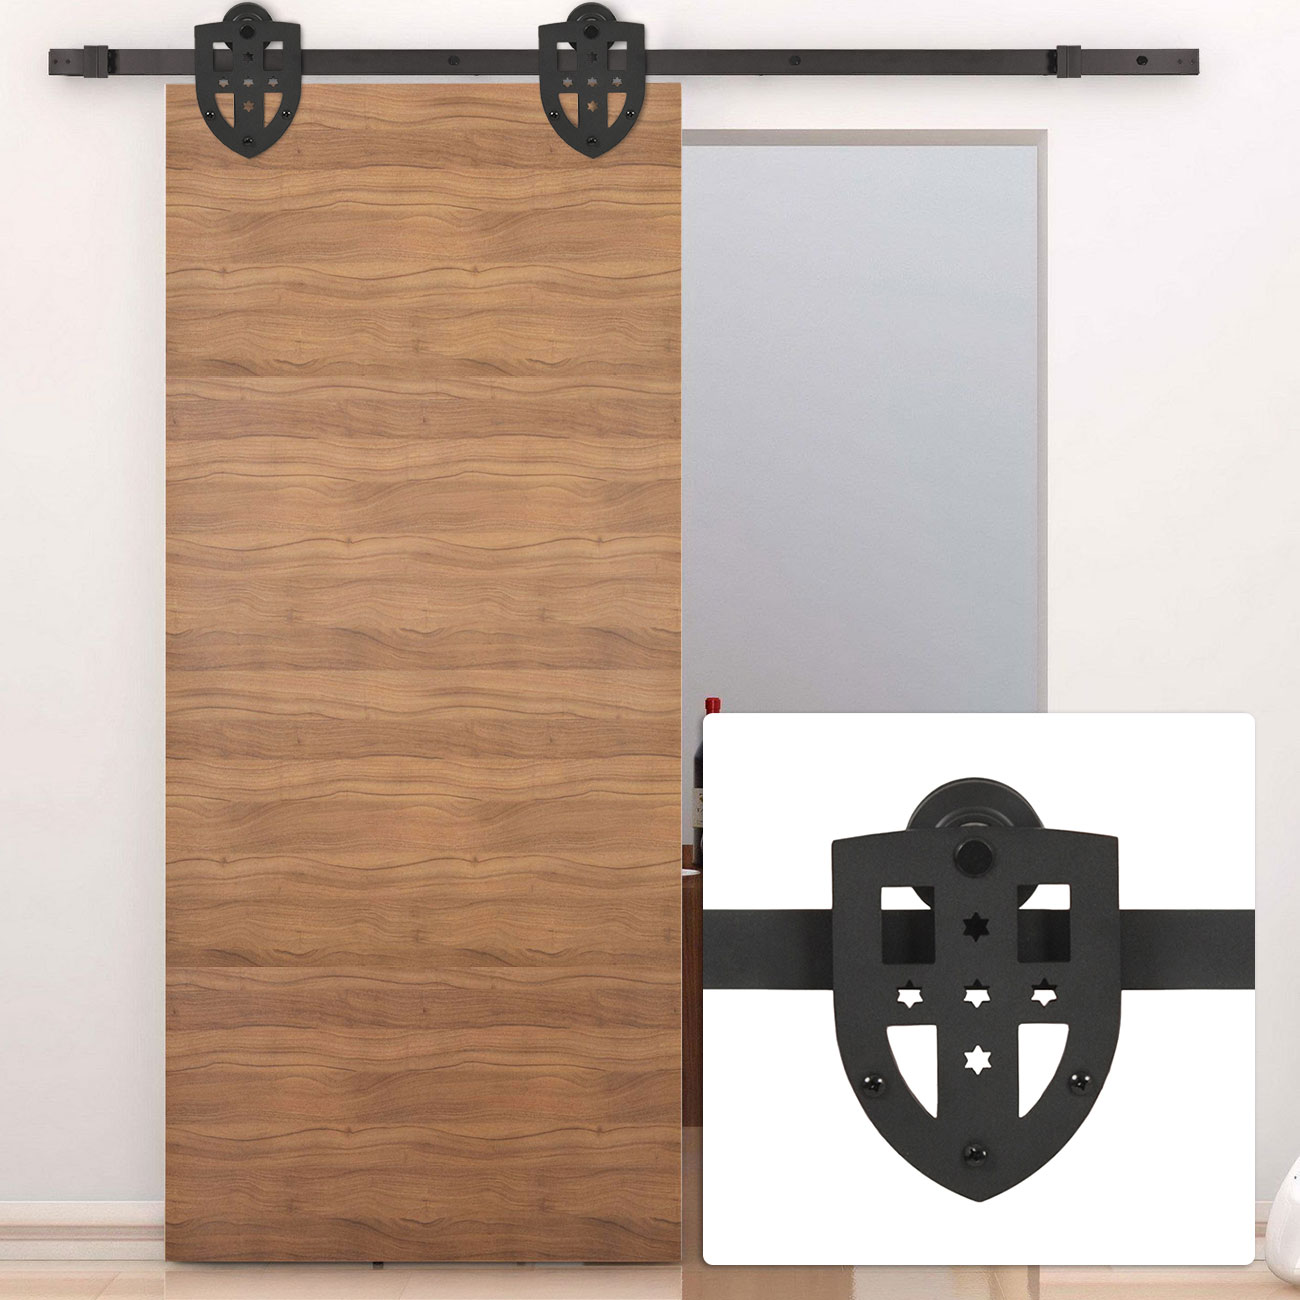 New 6ft Sliding Slide Barn Door Hardware Only Kit Interior Modern Cross Style Ebay